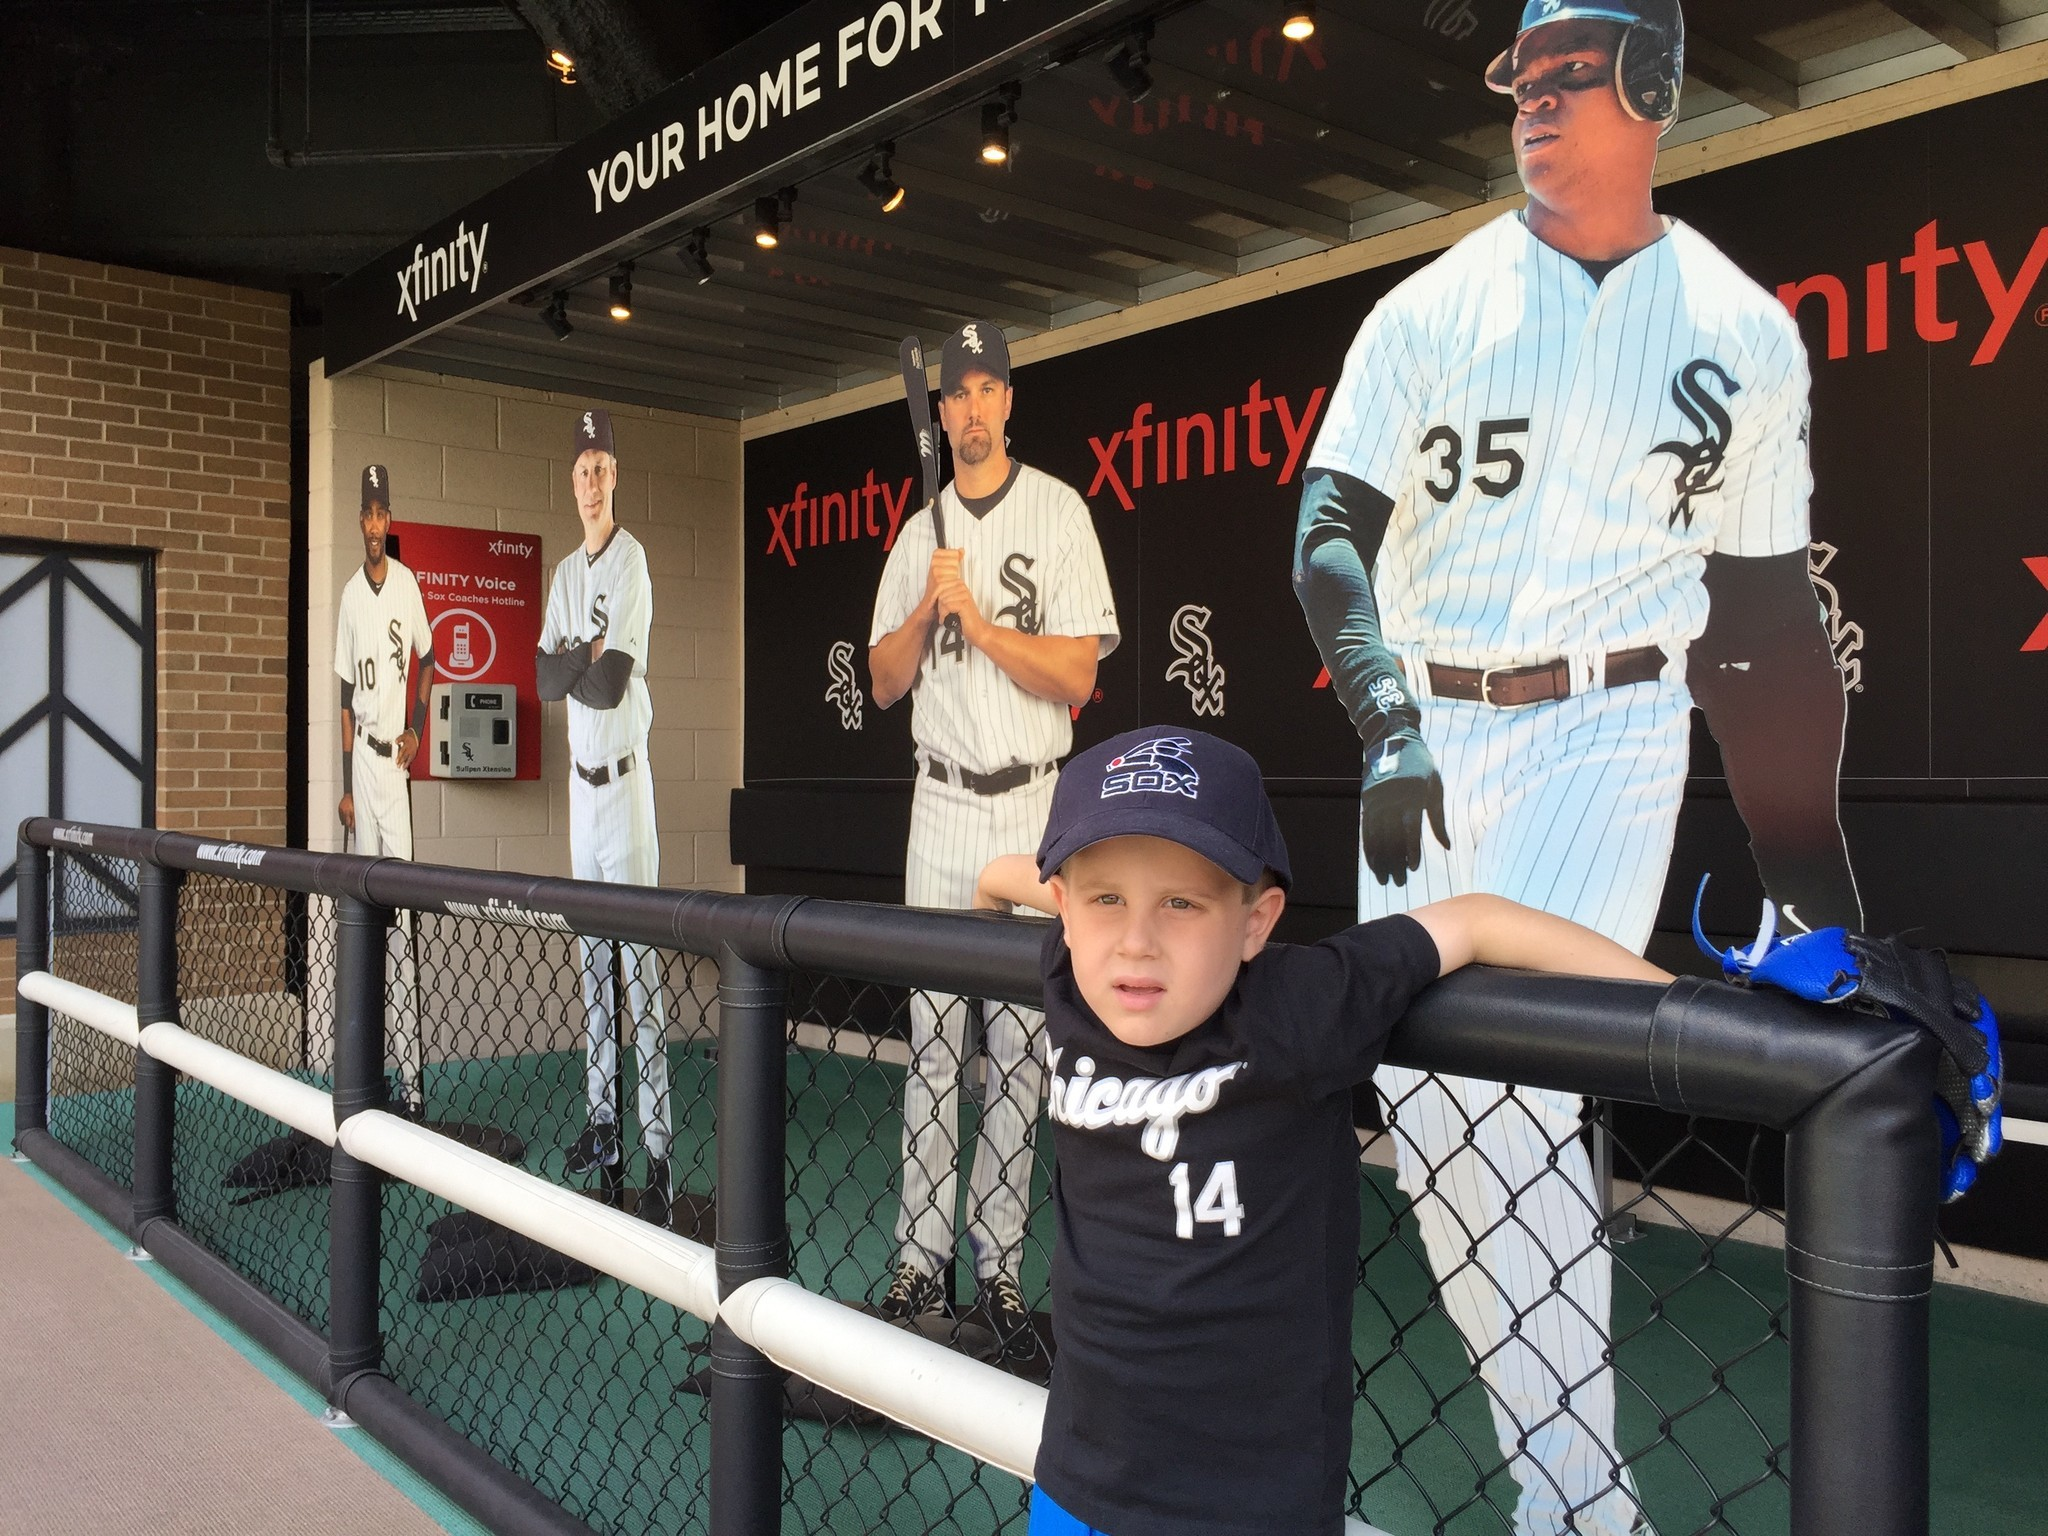 sports baseball redeye cubs comes young with kidney story